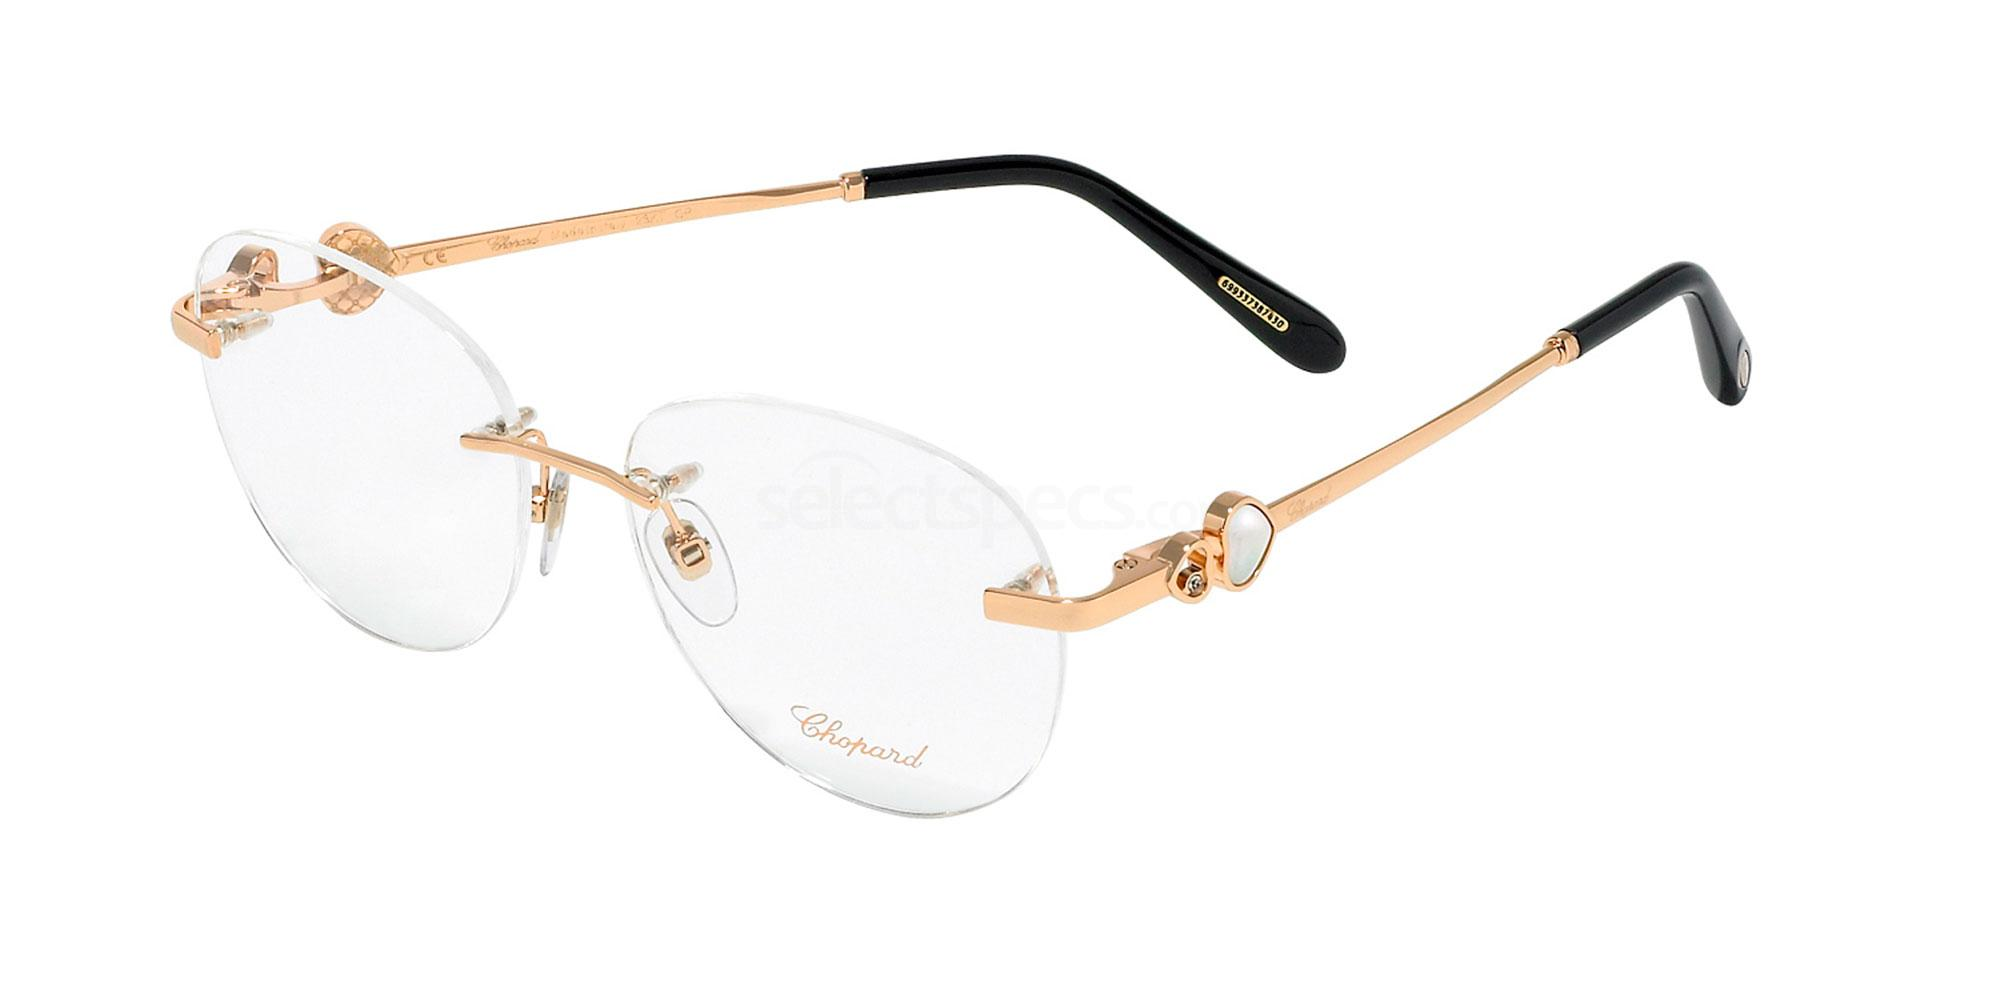 08FC VCHC53S Glasses, Chopard